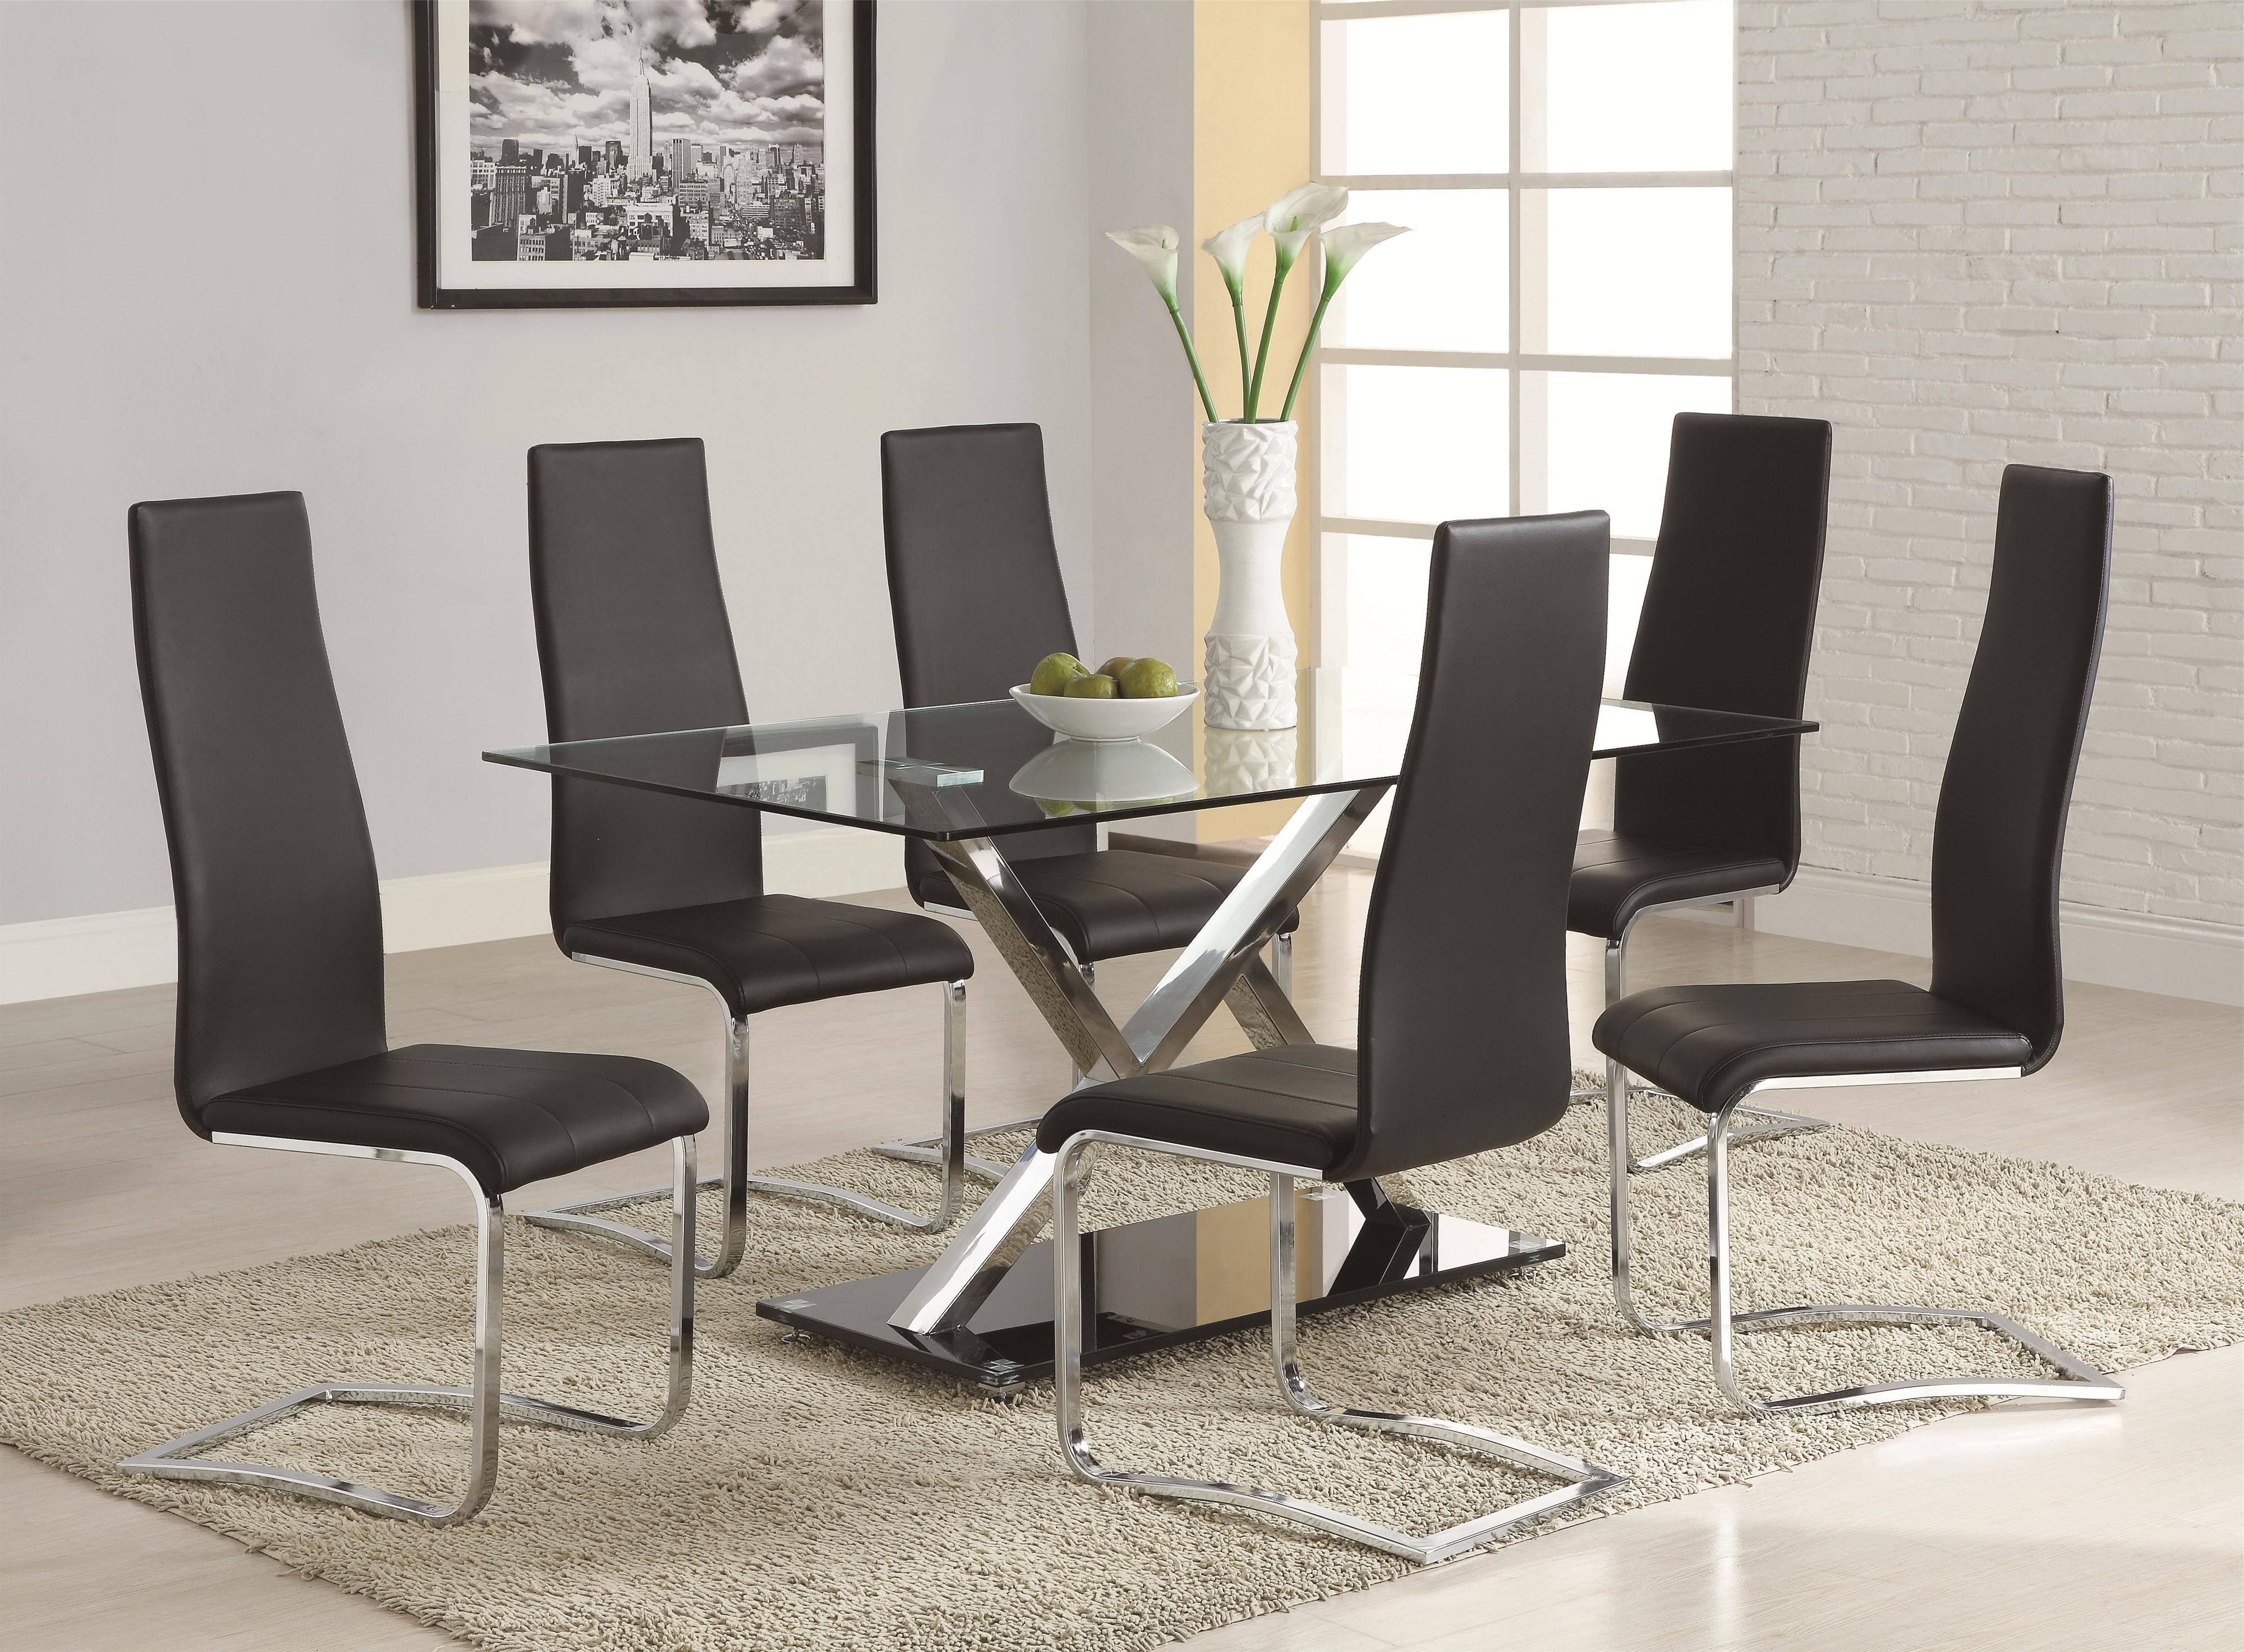 2018 Chrome Dining Room Sets Inside Coaster Modern Dining Black Faux Leather Dining Chair With Chrome (Gallery 23 of 25)